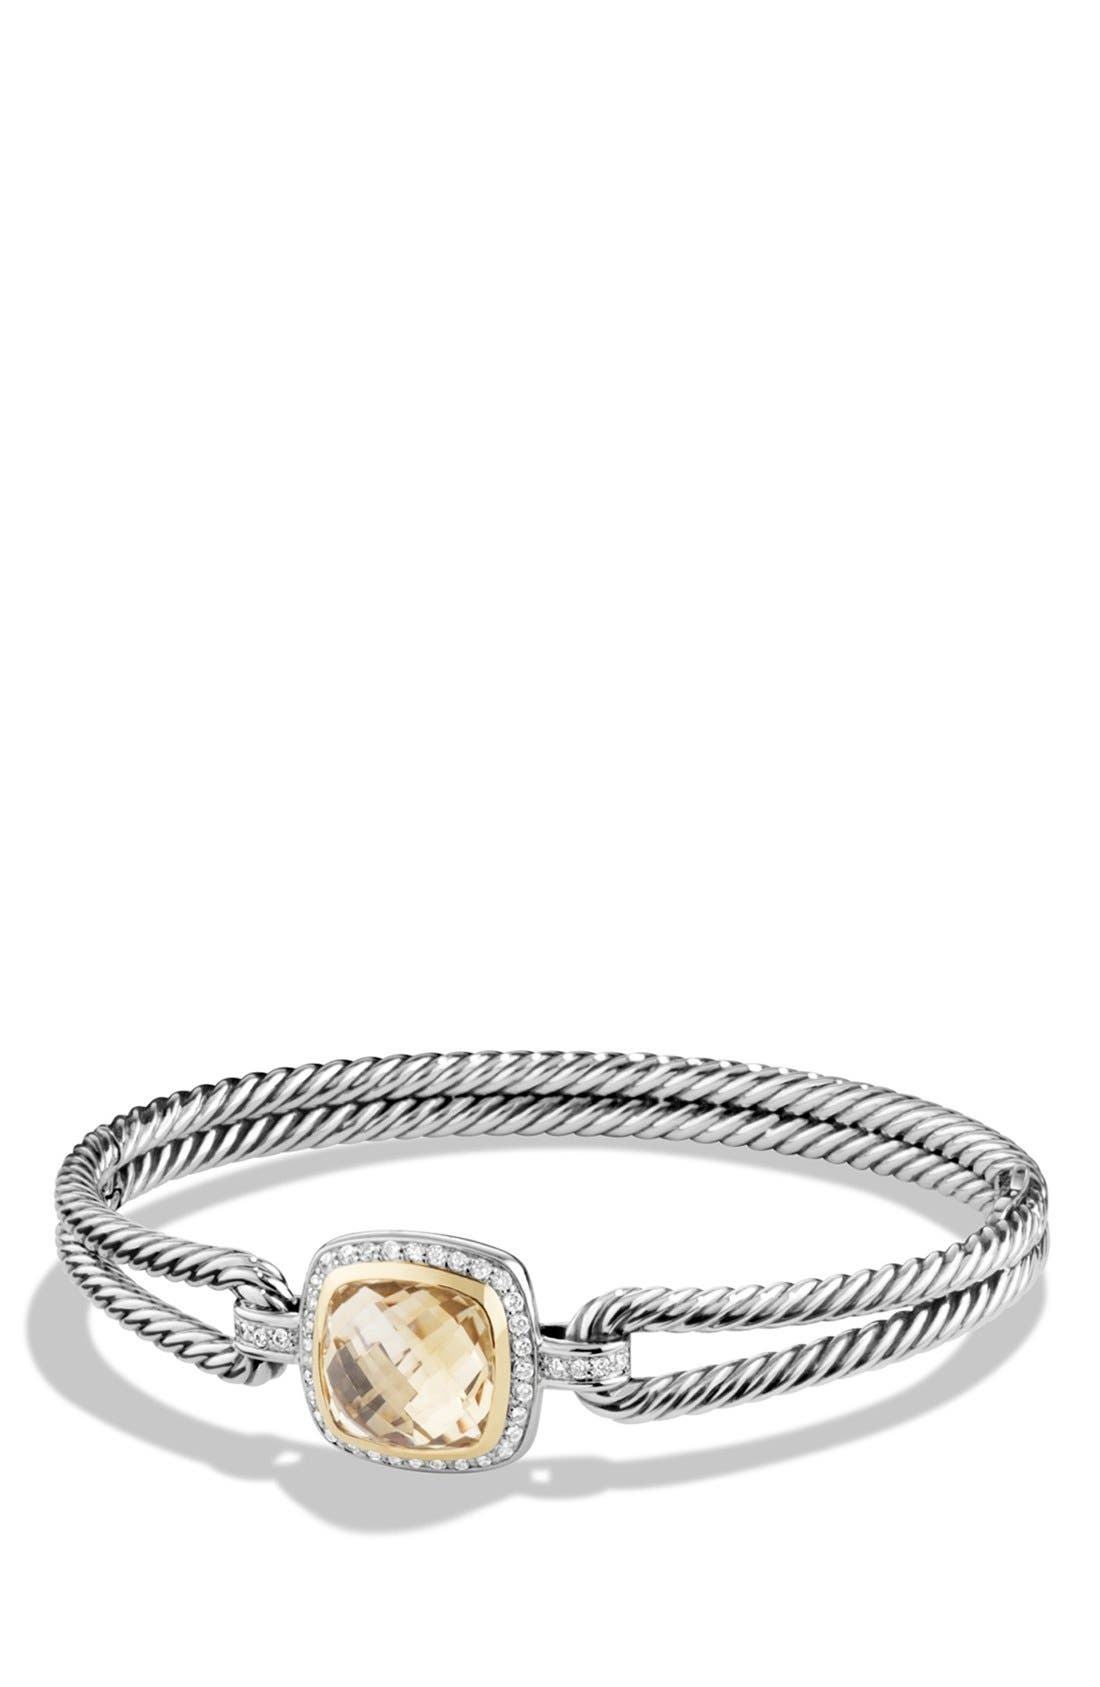 DAVID YURMAN 'Albion' Bracelet with Diamonds and 18K Gold, Main, color, CHAMPAGNE CITRINE